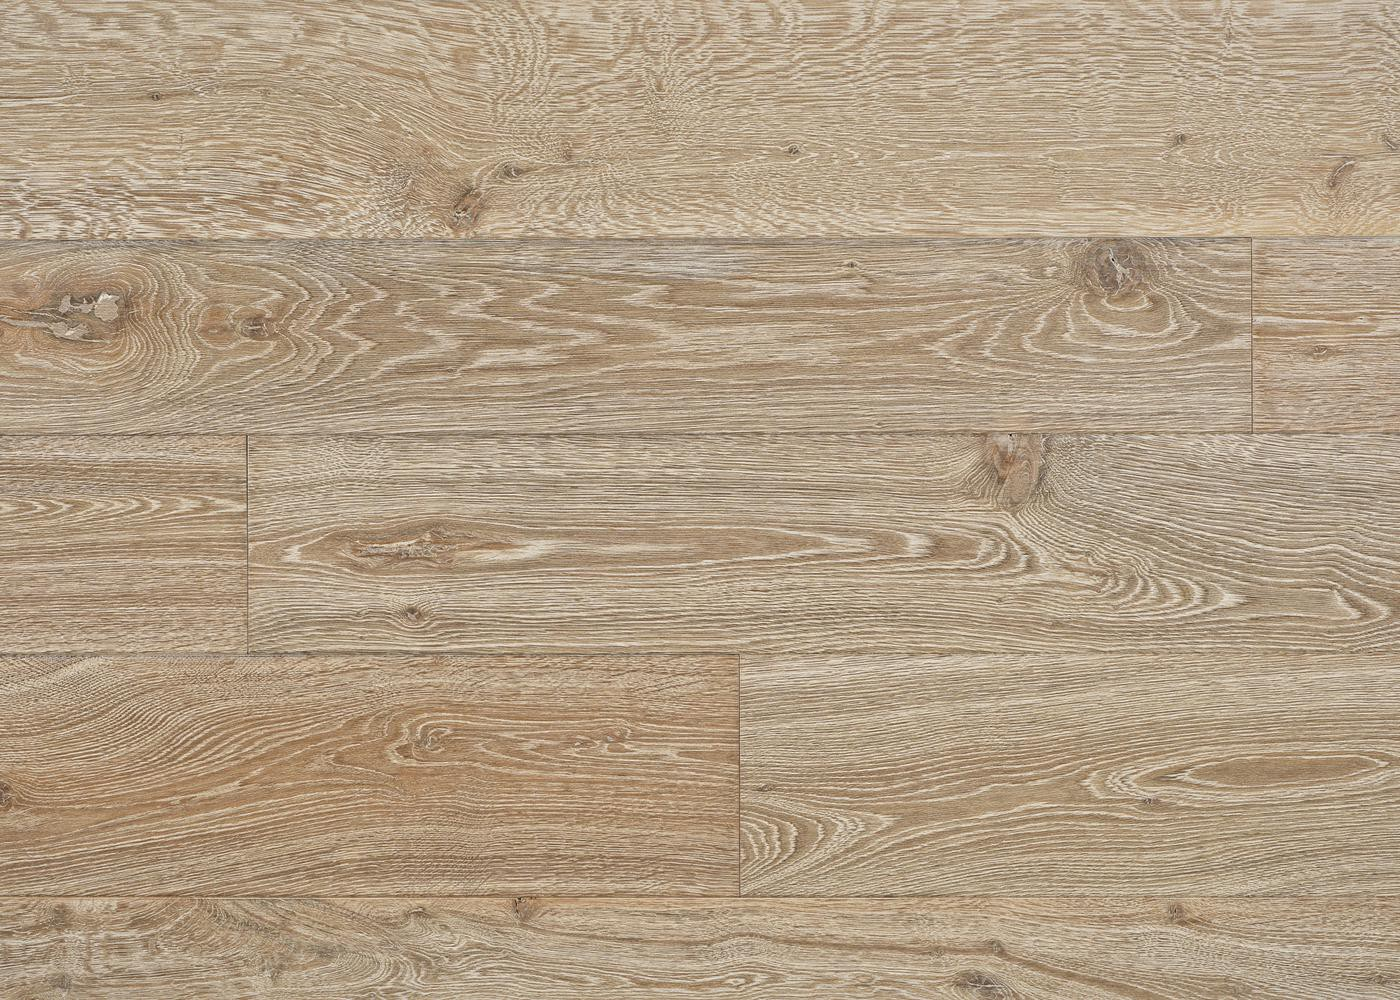 Parquet chêne massif HYDRA noeuds ouverts Matière noeuds ouverts huile cire 20x160/180/200x400-2400